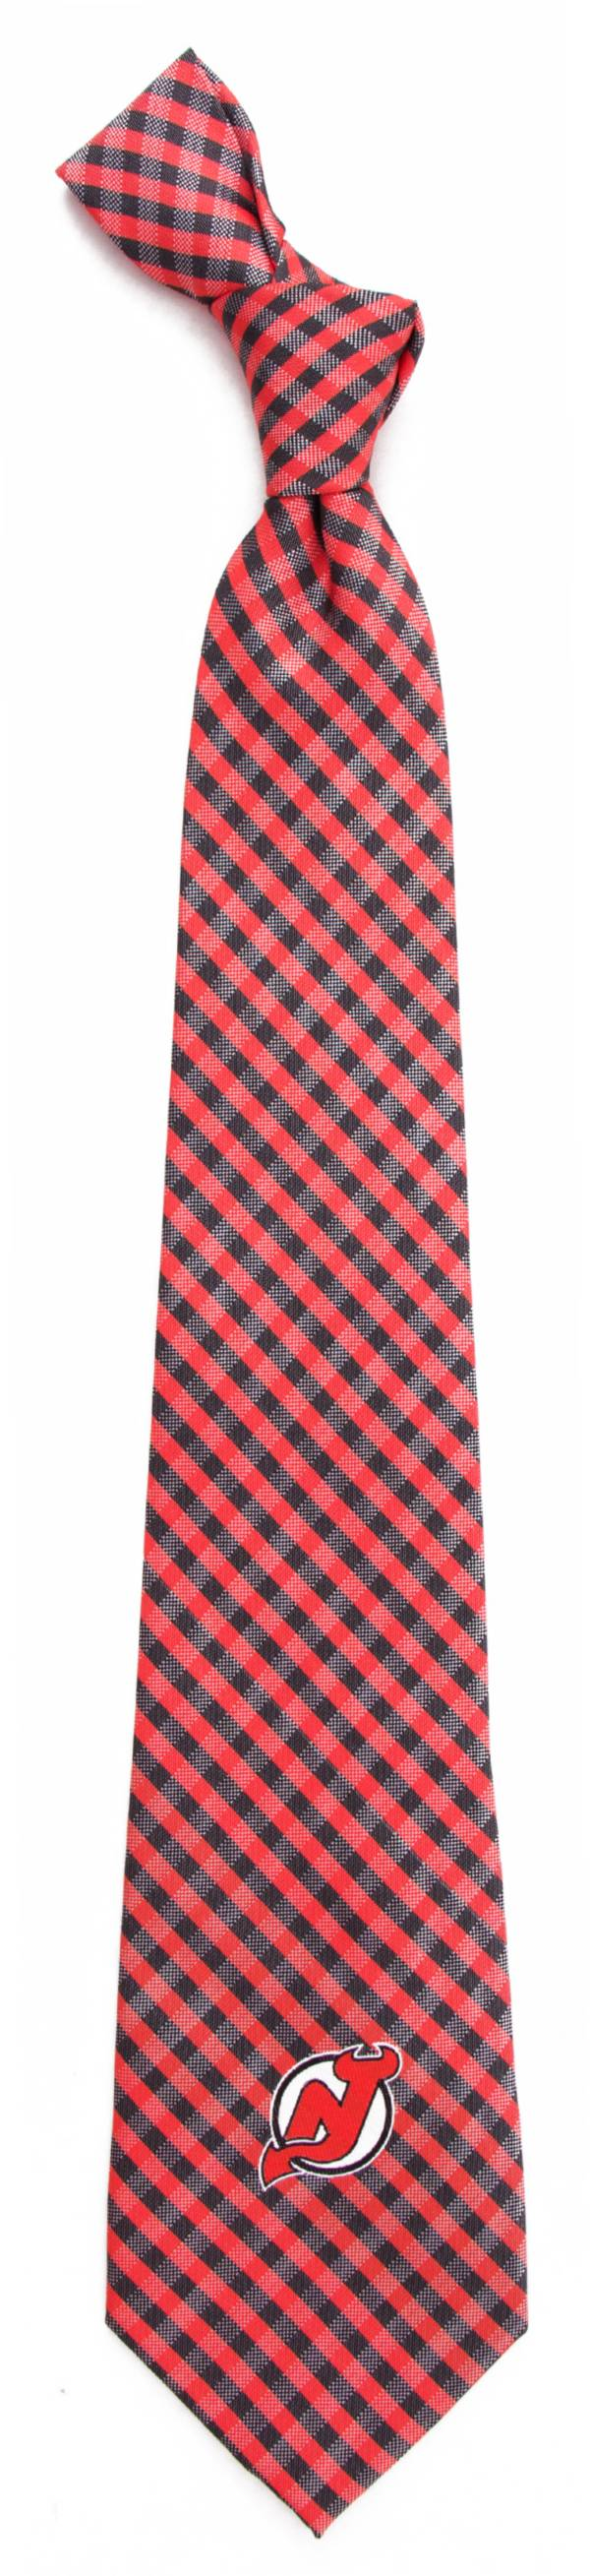 Eagles Wings New Jersey Devils Gingham Necktie product image